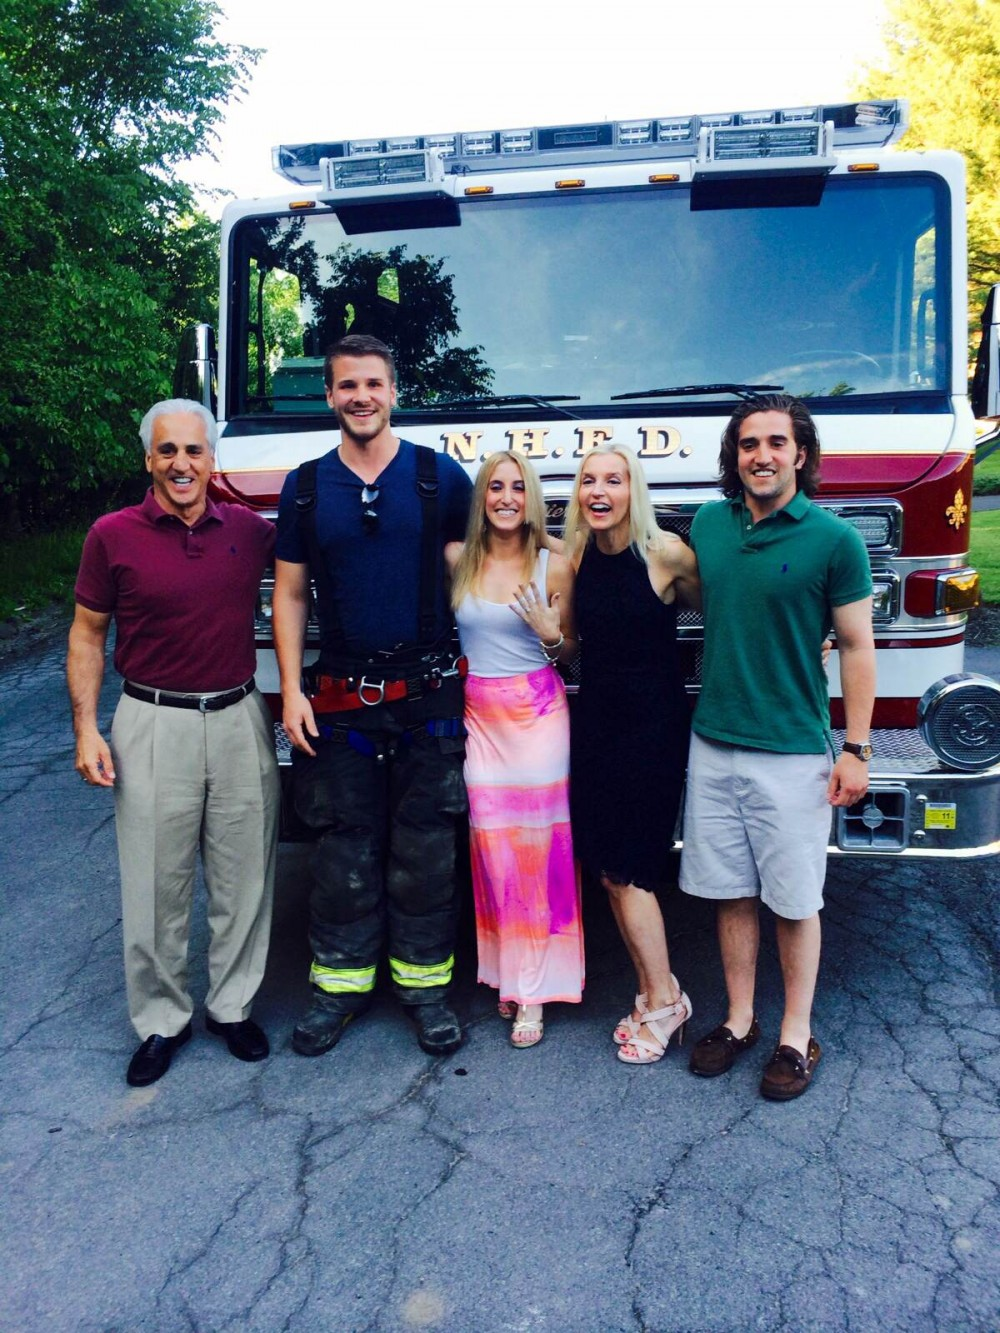 Image 6 of Carly and Brian's Firemen Proposal